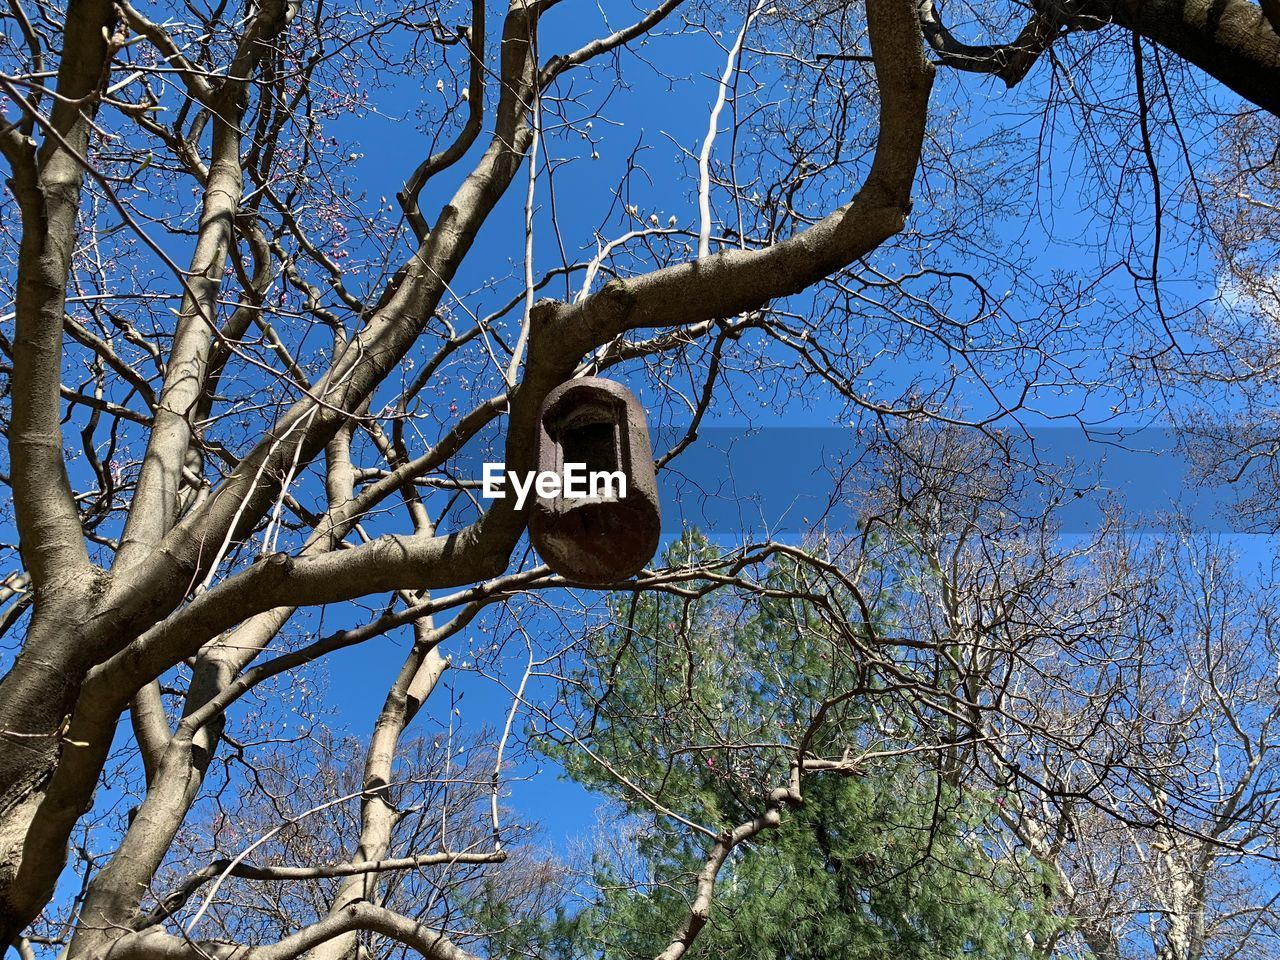 tree, branch, low angle view, plant, bare tree, sky, nature, vertebrate, animals in the wild, animal themes, no people, day, bird, animal wildlife, animal, trunk, tree trunk, clear sky, perching, outdoors